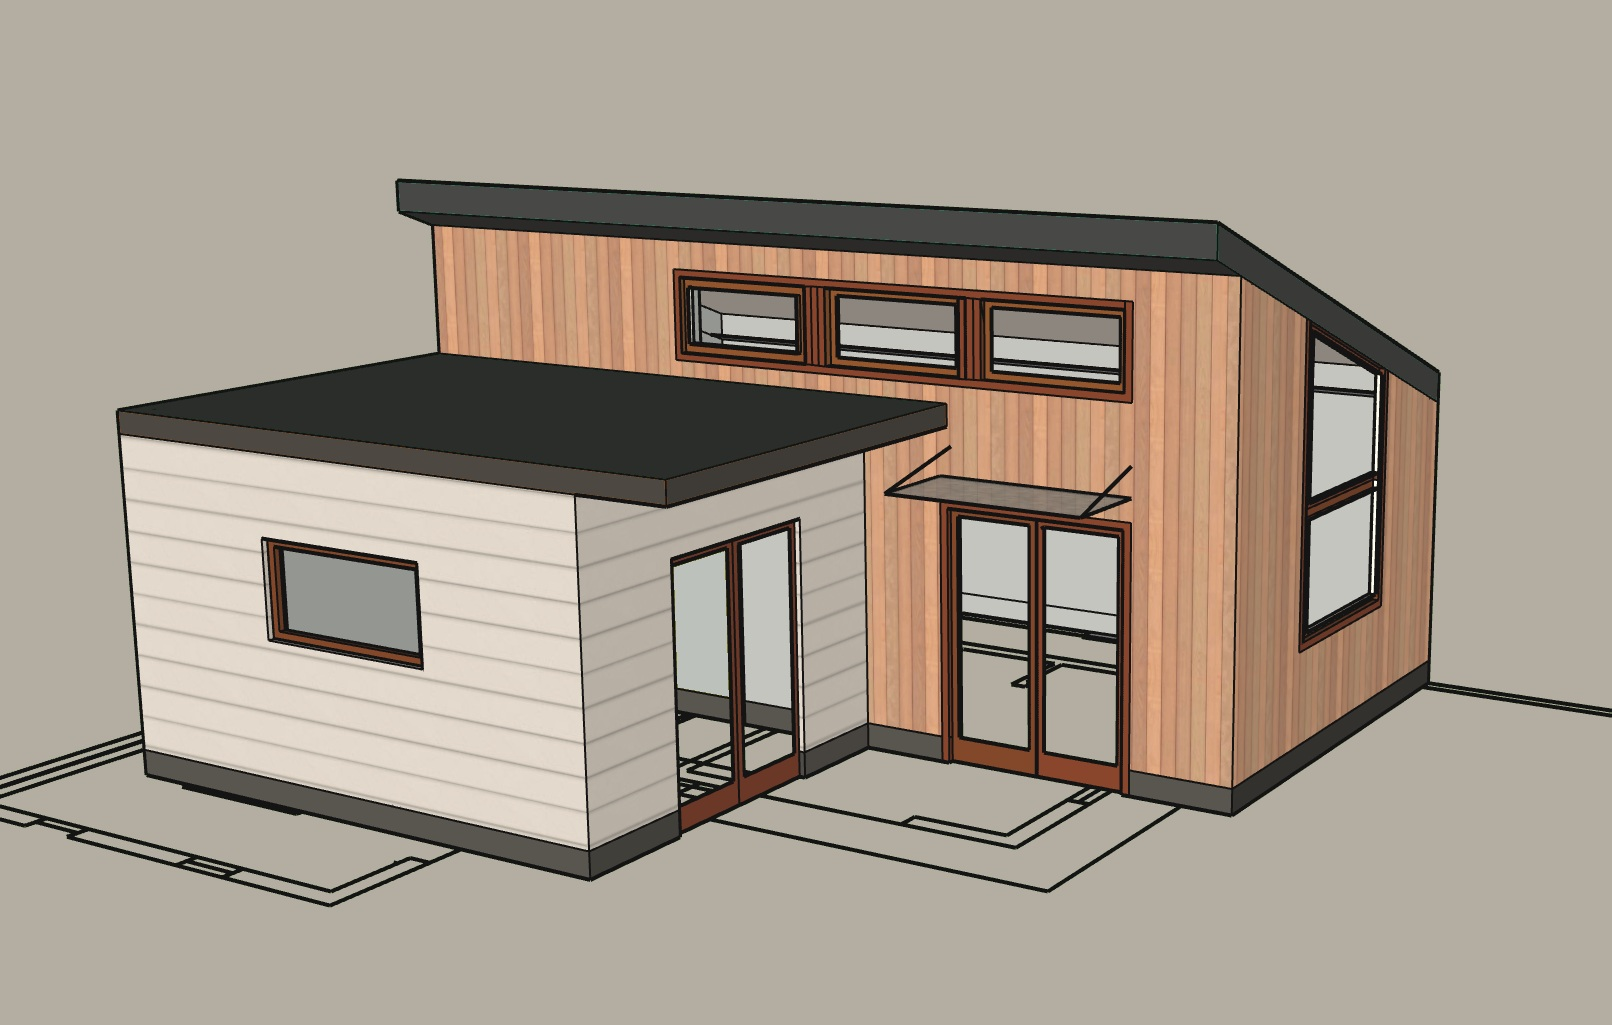 485 sq.ft. design study for Albany. Detached unit to be used as rental income.  Design and Architecture: Kasia Kowalska & Ingrid Ballmann. Construction: Black Wolf Construction.